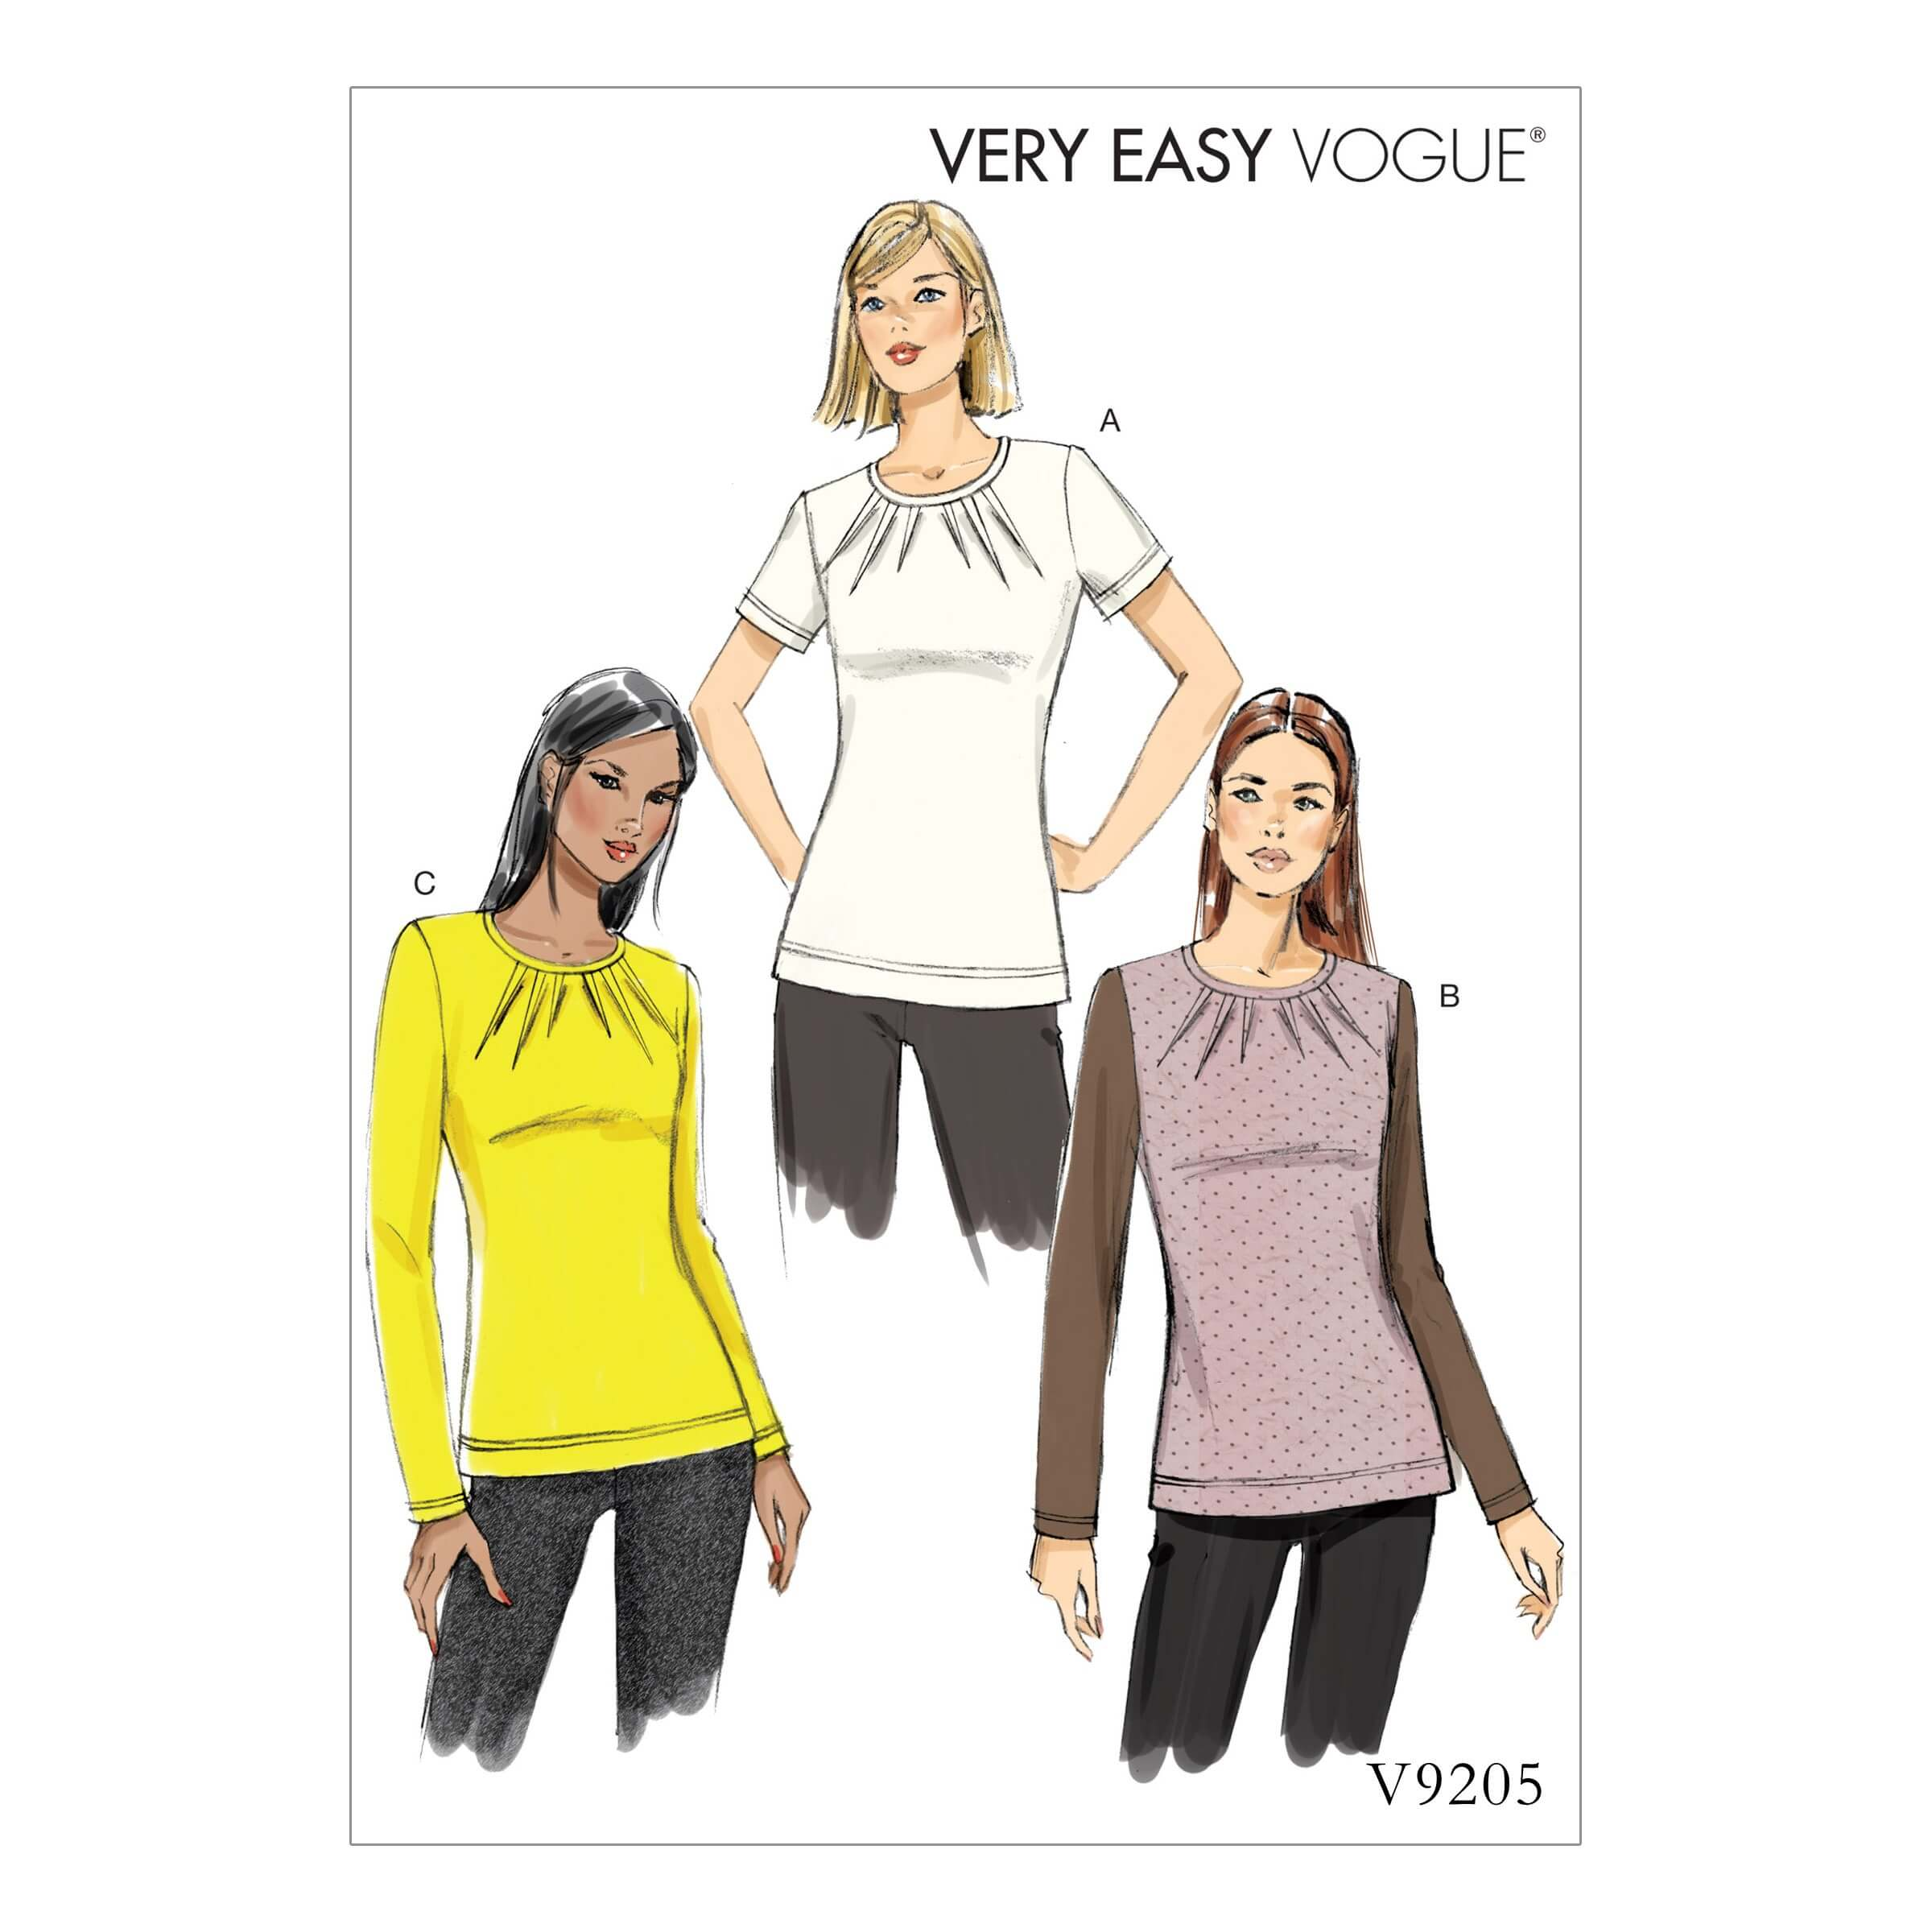 Vogue Sewing Pattern V9205 Women's Knit Tops With Inverted Neck Darts